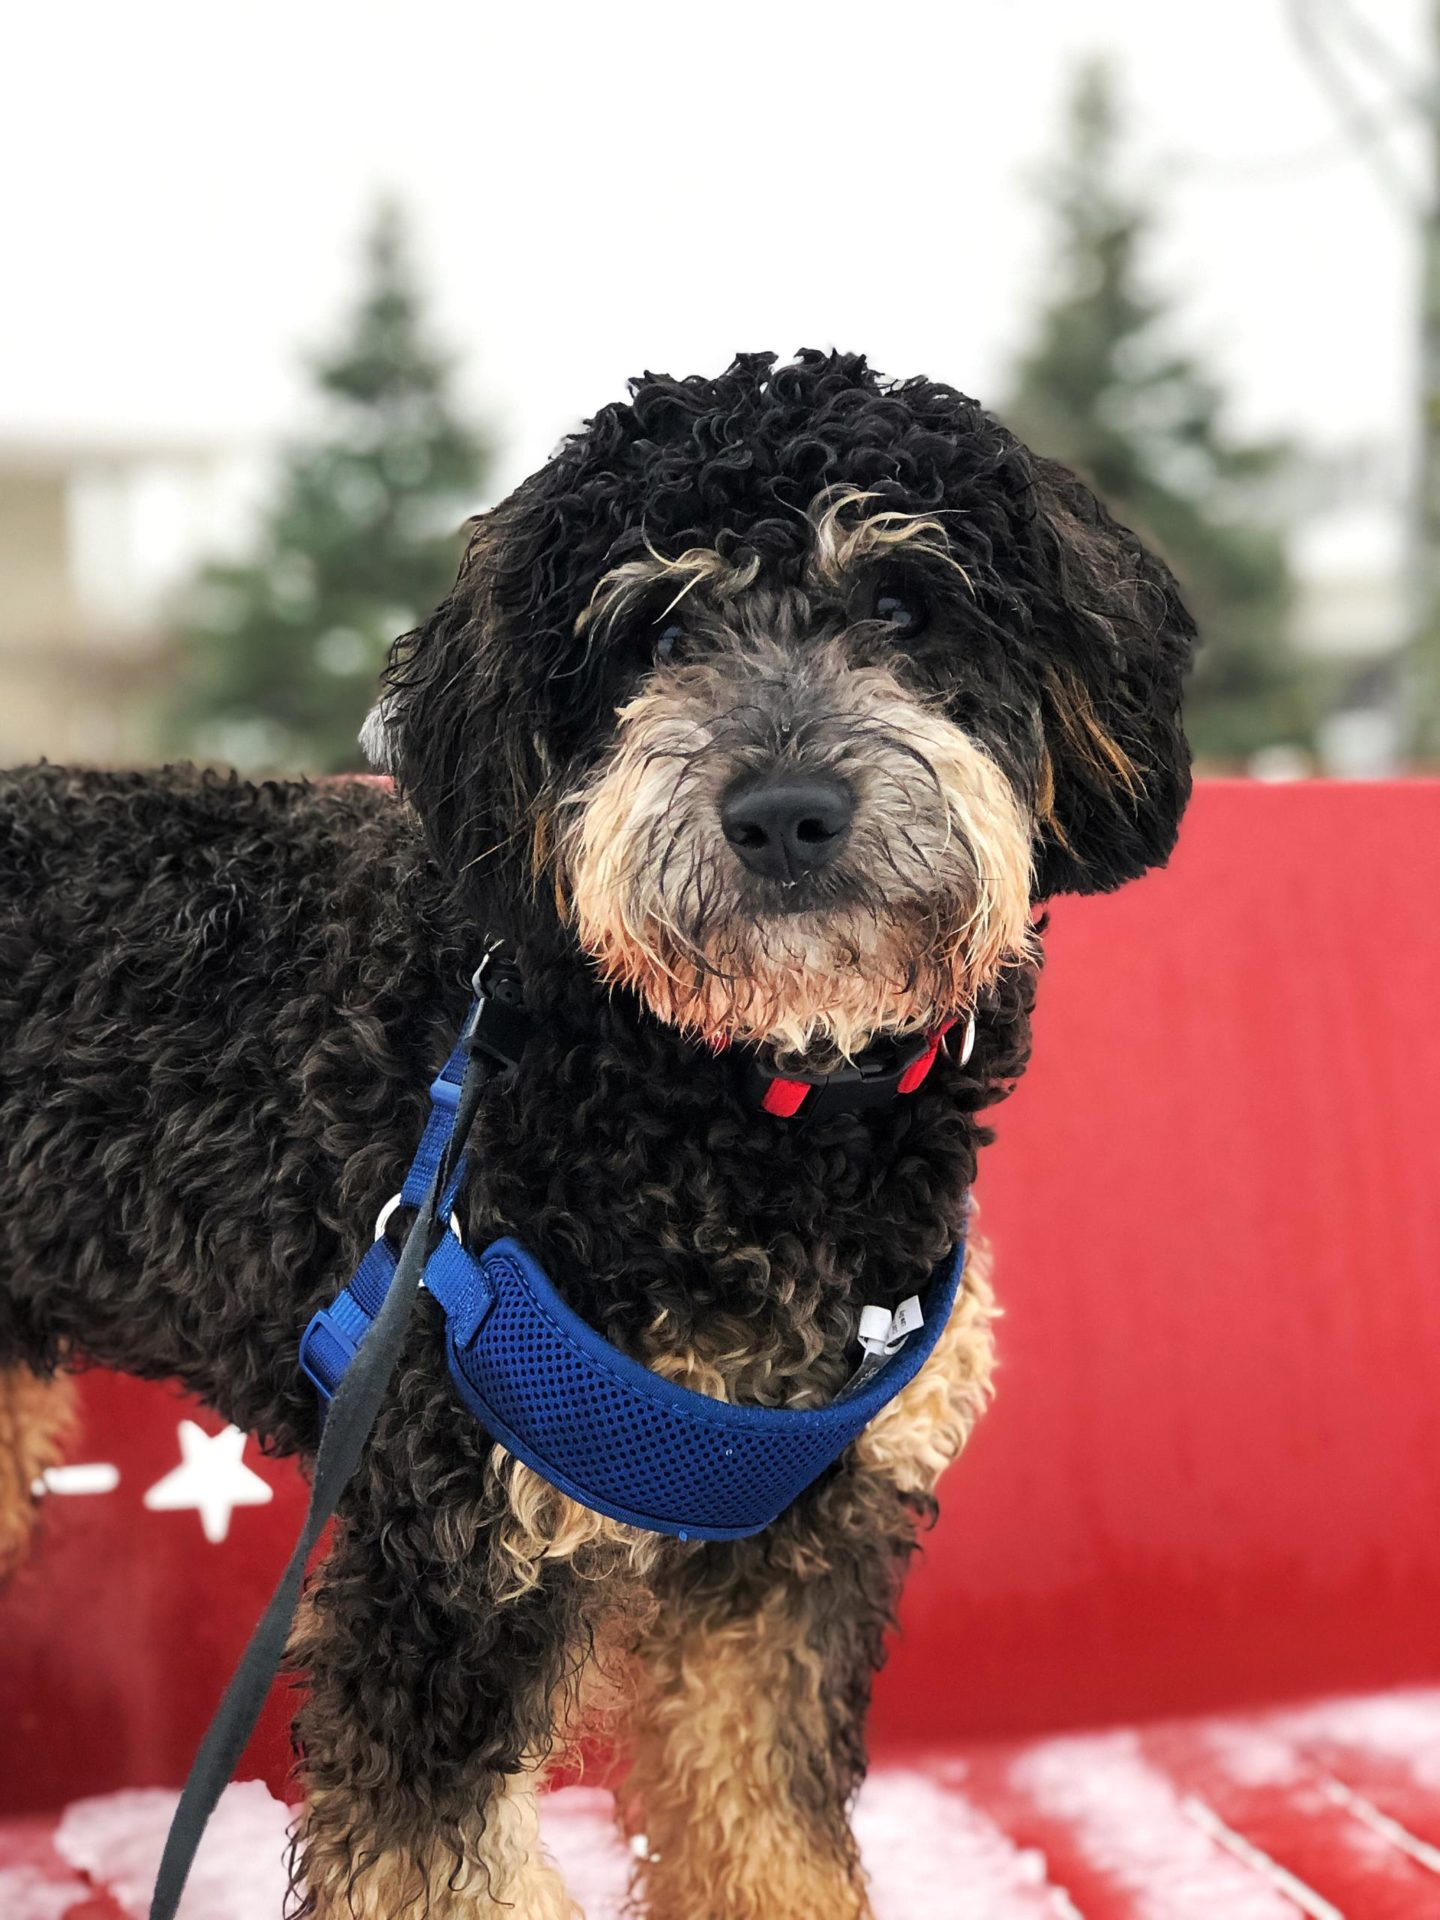 A picture of Reese the Bernedoodle dog standing on a park bench